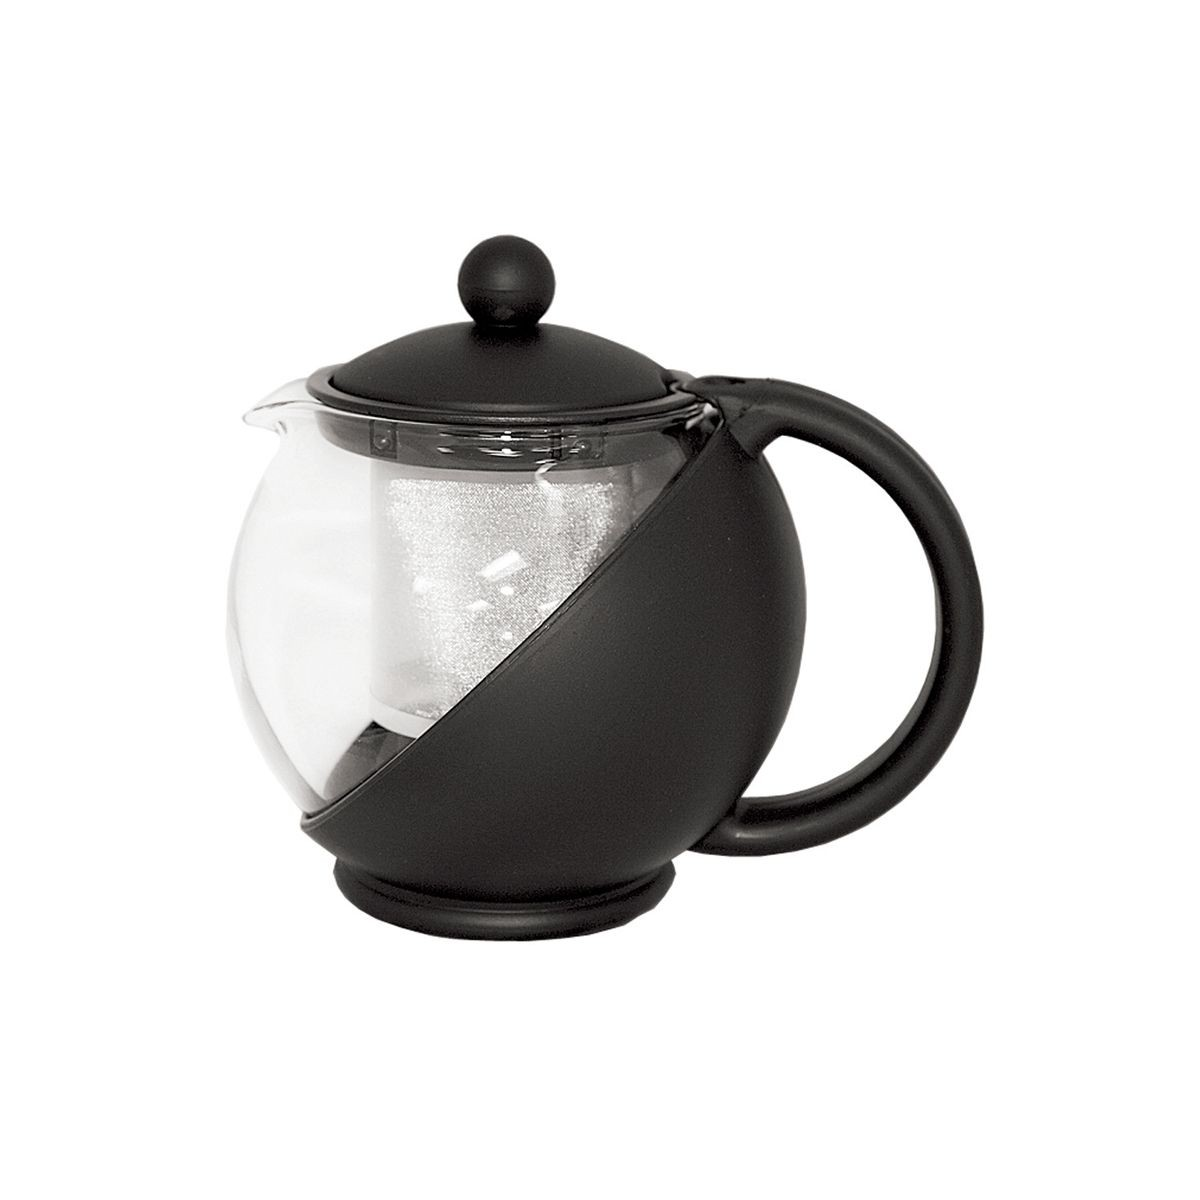 Service Ideas TB600CC Teaball Server with Removable Infuser Basket, 0.6 Liter